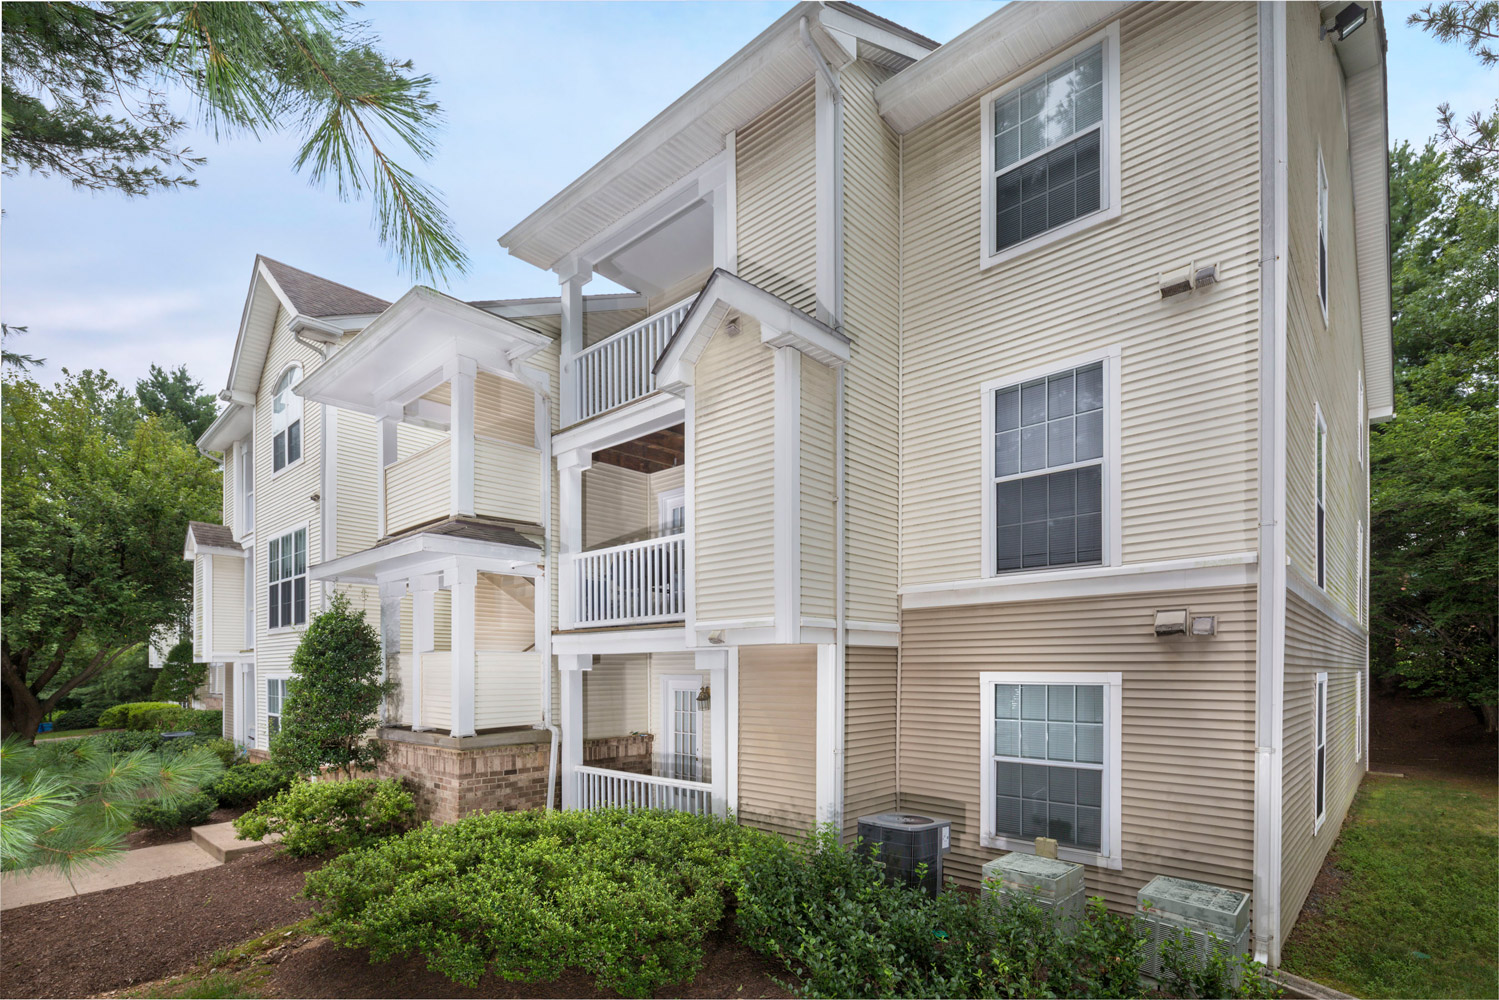 1 and 2 bedroom apartments at Seneca Club Apartments in Germantown, MD